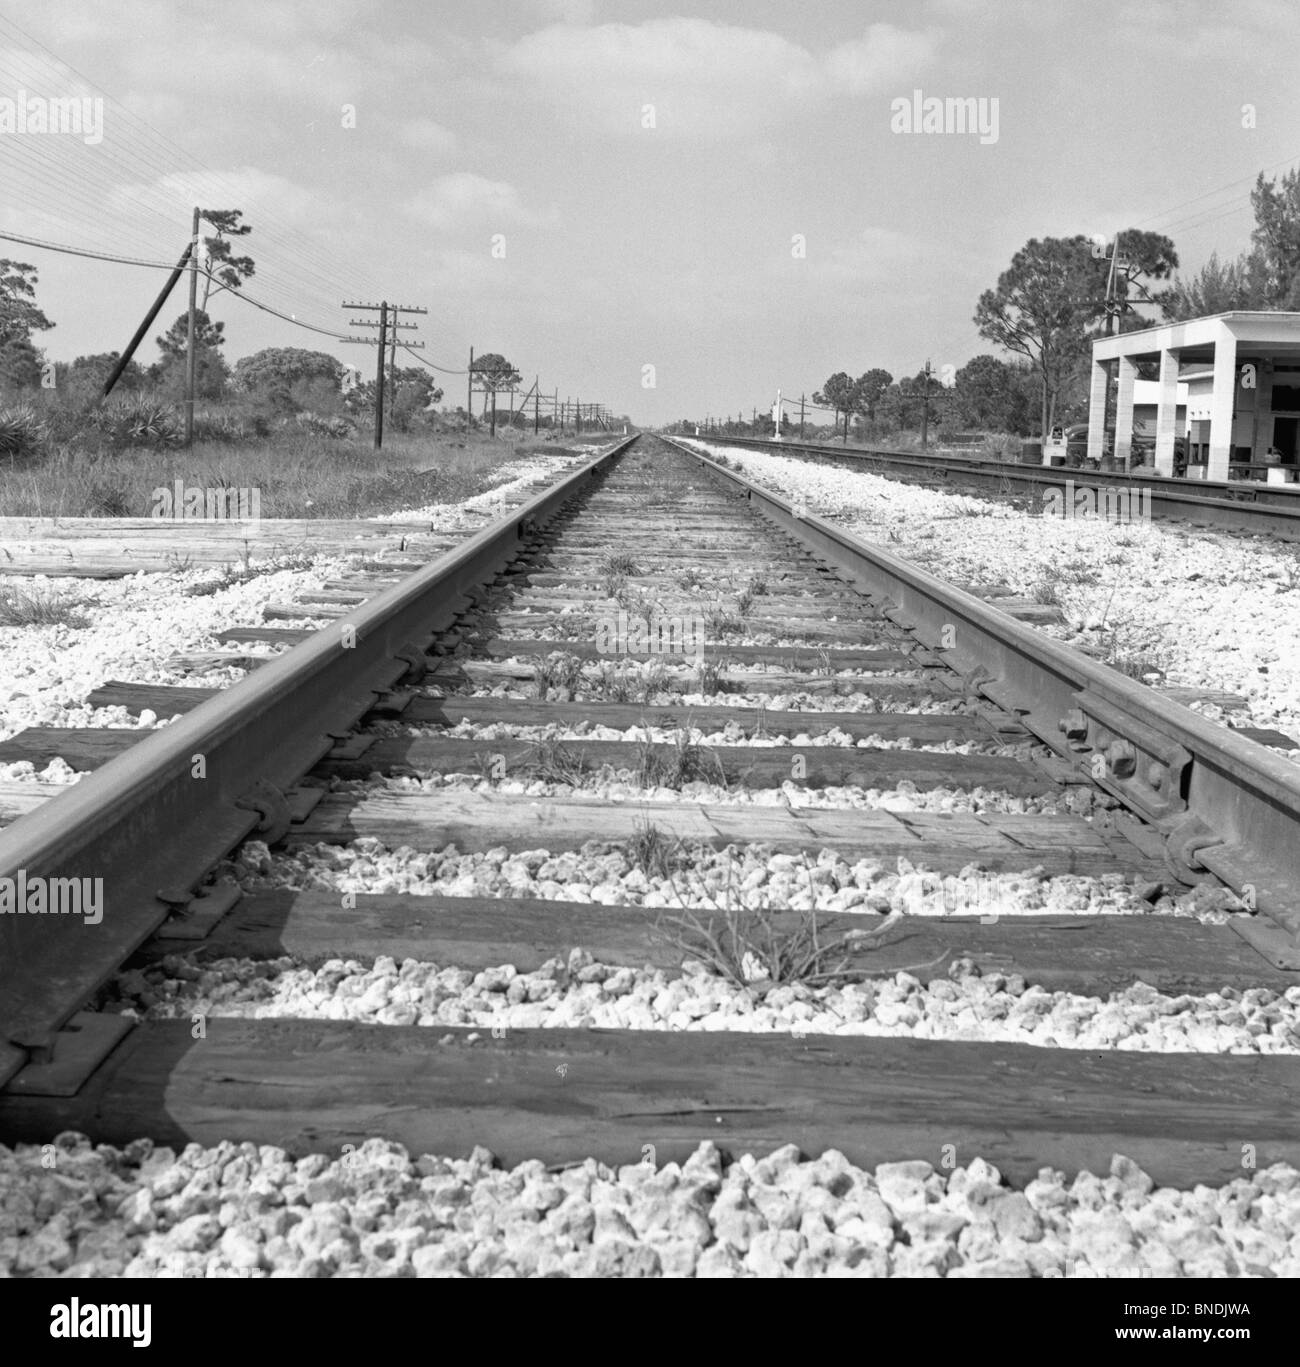 Railroad tracks passing through a landscape - Stock Image